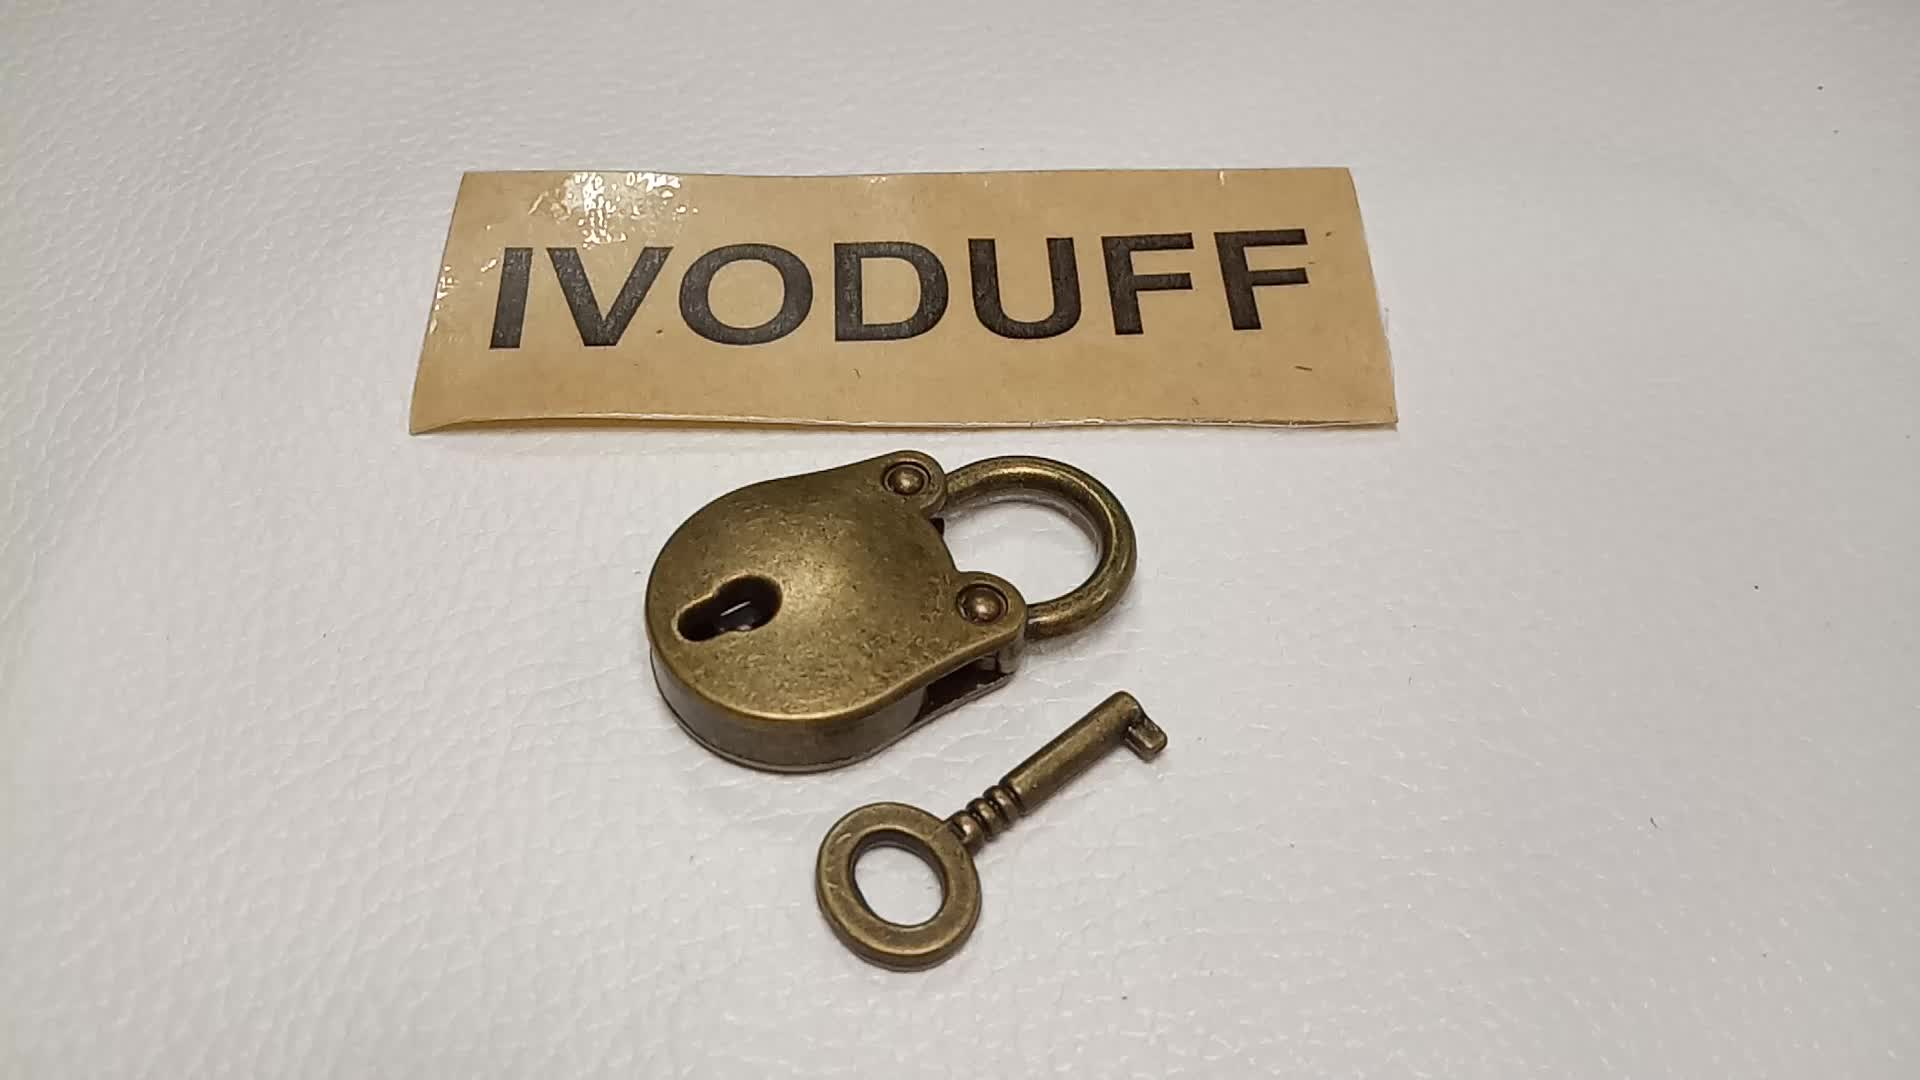 Ivoduff Wholesale Vintage Round Padlock, Antique Padlock With Key For Wood Gift Box